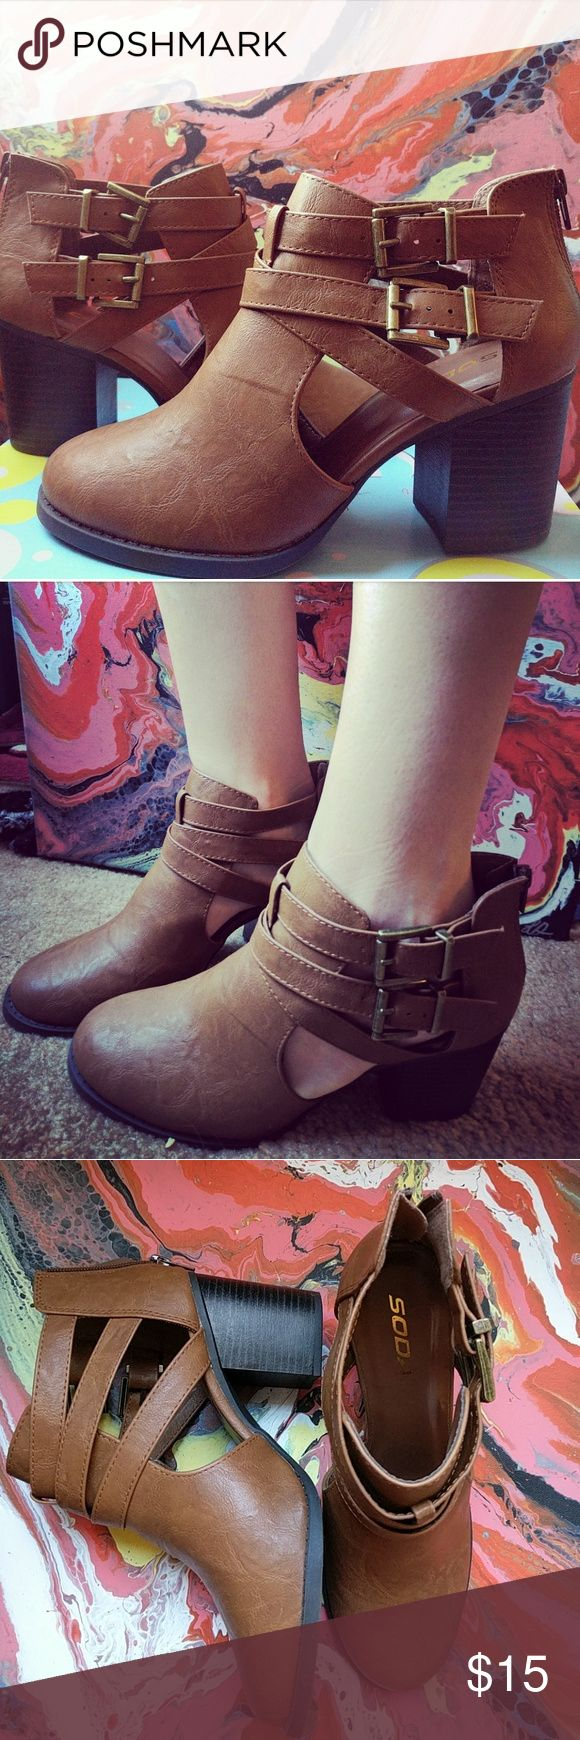 Soda Shoes Brown leather booties Tilly's Shoes Ankle Boots & Booties